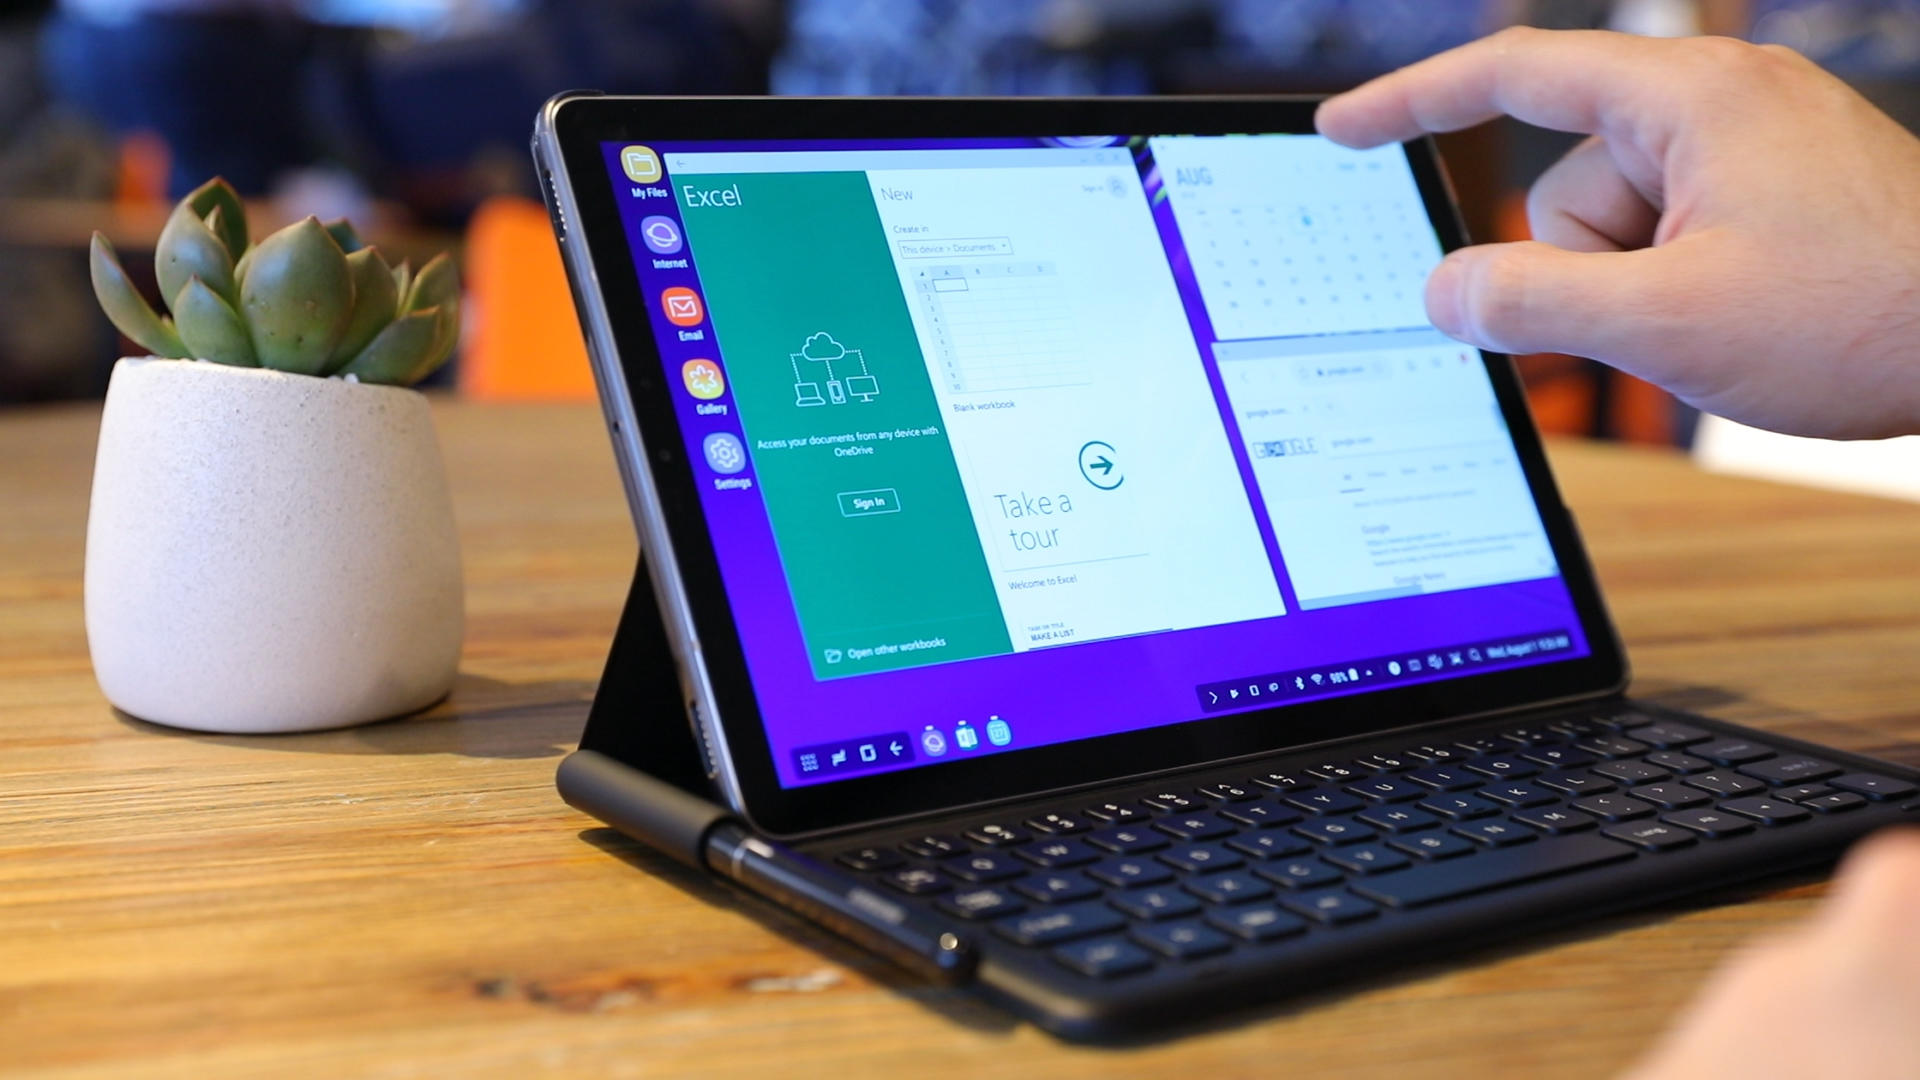 Video: Samsung's Galaxy Tab S4 is an Android tablet that wants to be a laptop